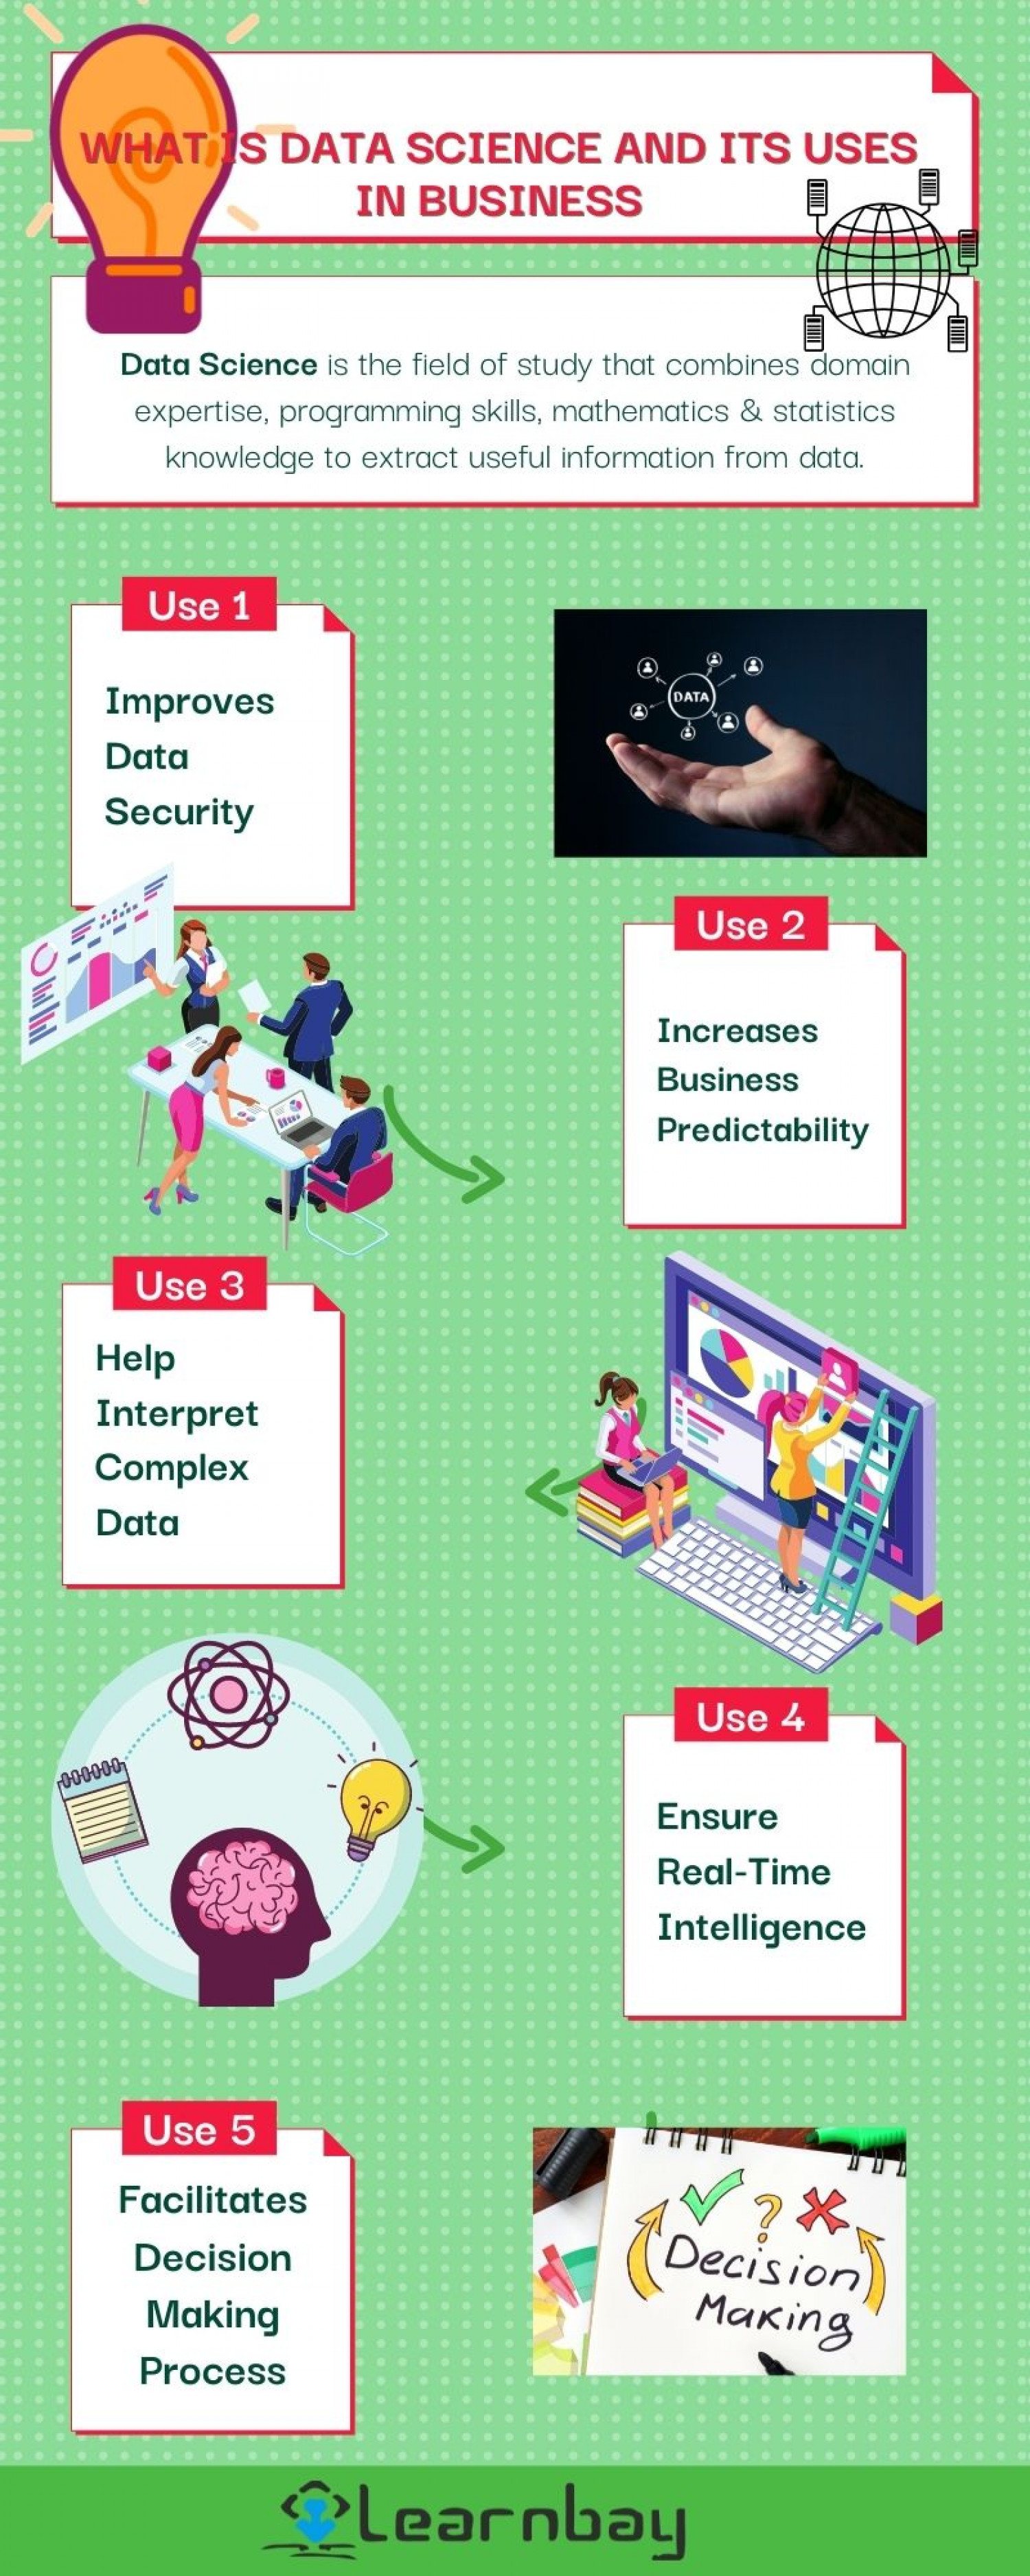 WHAT IS DATA SCIENCE? Infographic